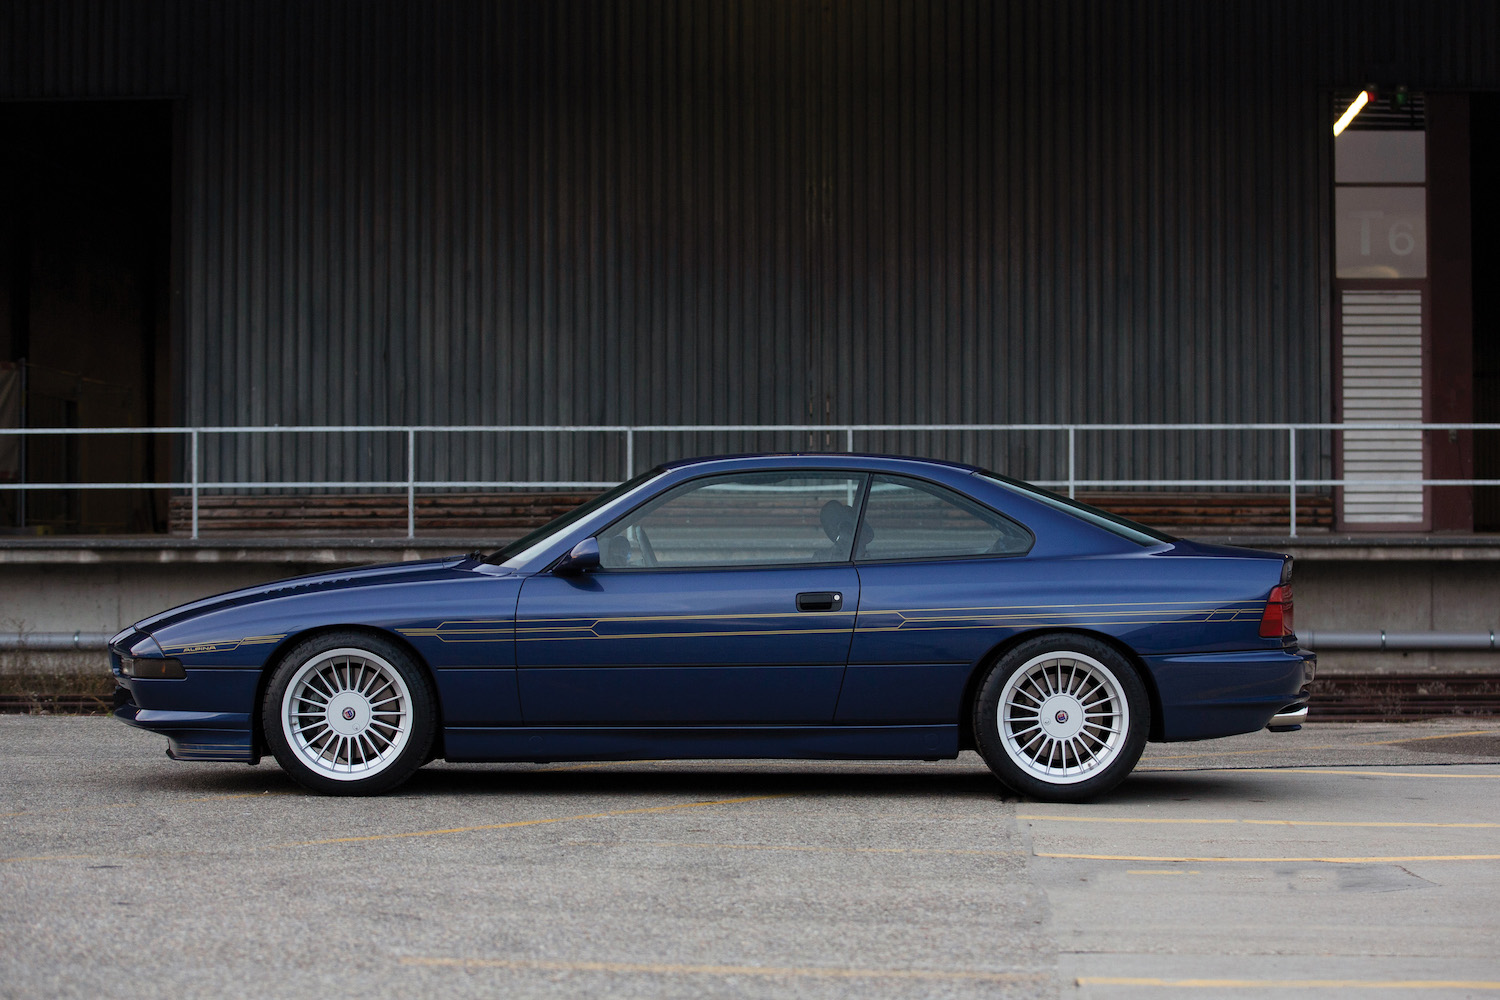 1993 BMW Alpina B12 5.7 Coupe side-view